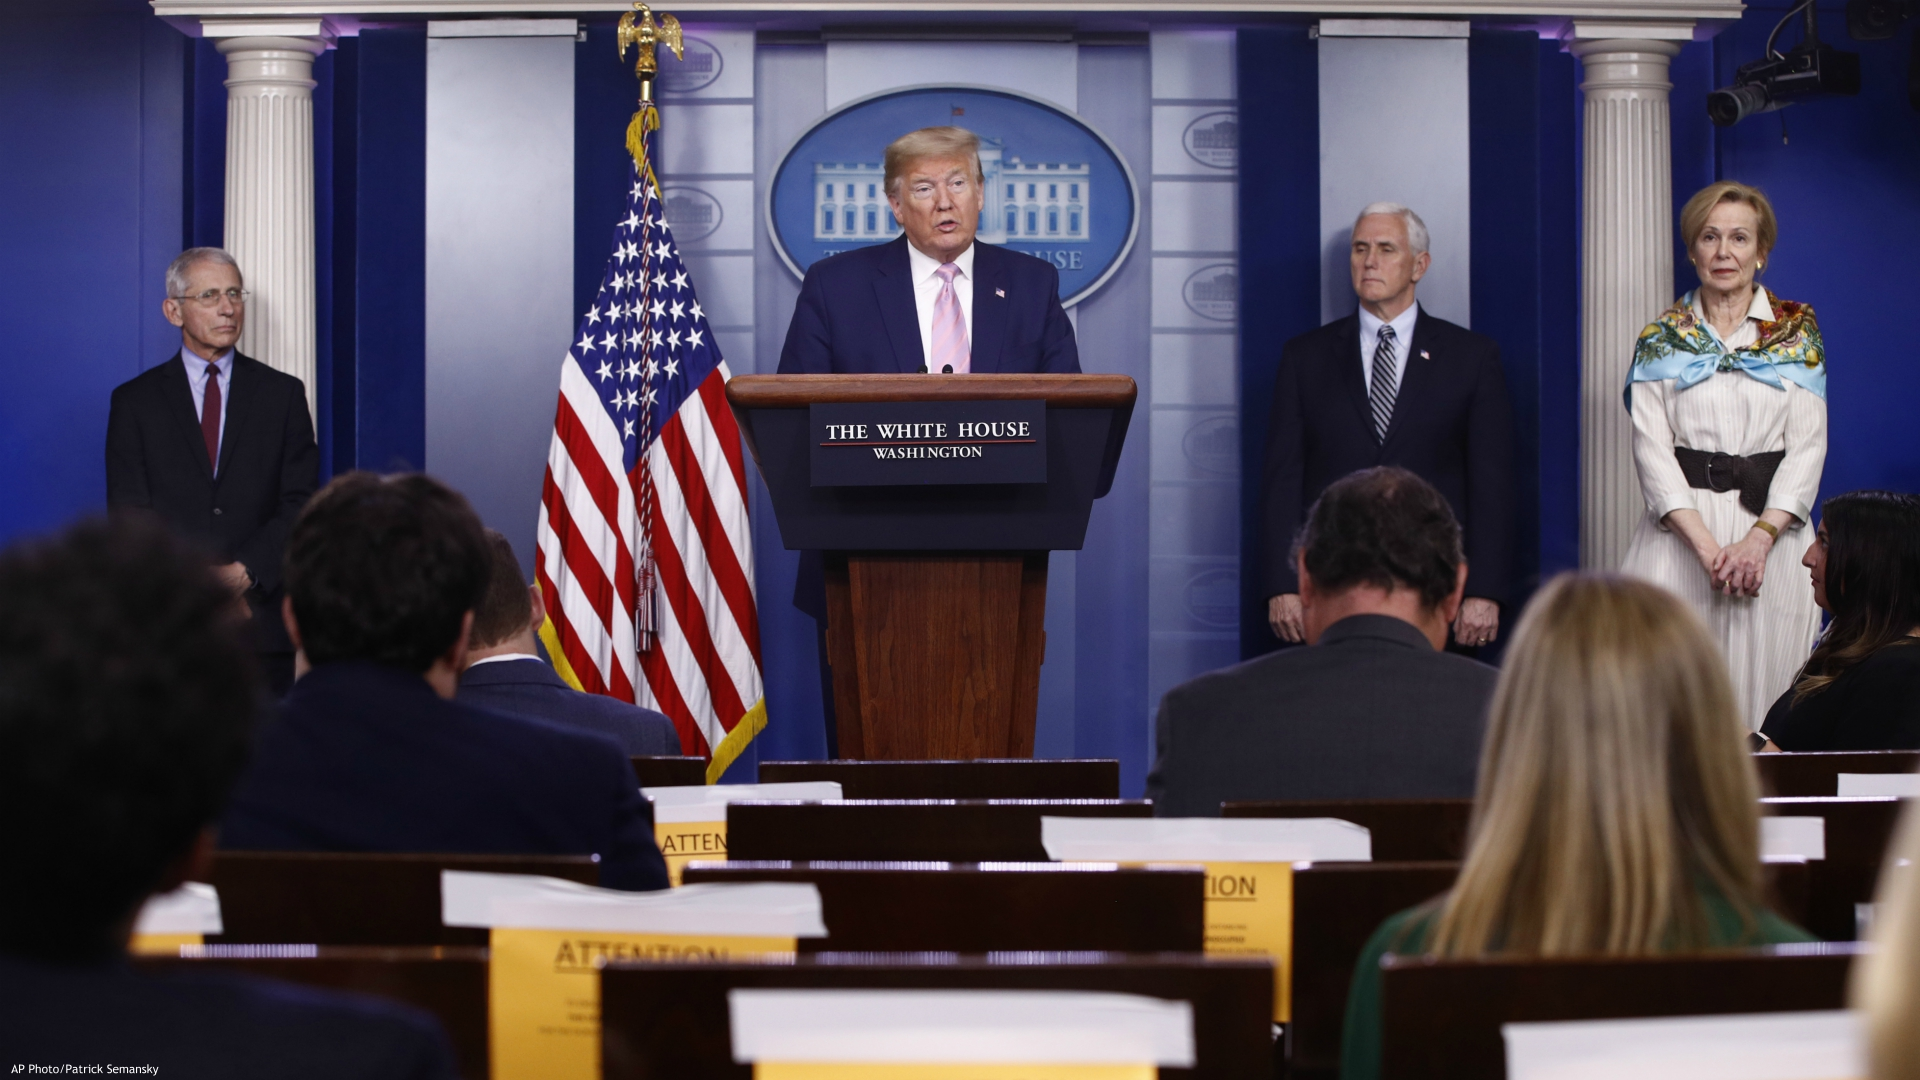 President Donald Trump speaks during a coronavirus task force briefing at the White House, Saturday, April 4, 2020, in Washington. From left, Dr. Anthony Fauci, director of the National Institute of Allergy and Infectious Diseases, Trump, Vice President Mike Pence and Dr. Deborah Birx, White House coronavirus response coordinator. (AP Photo/Patrick Semansky)